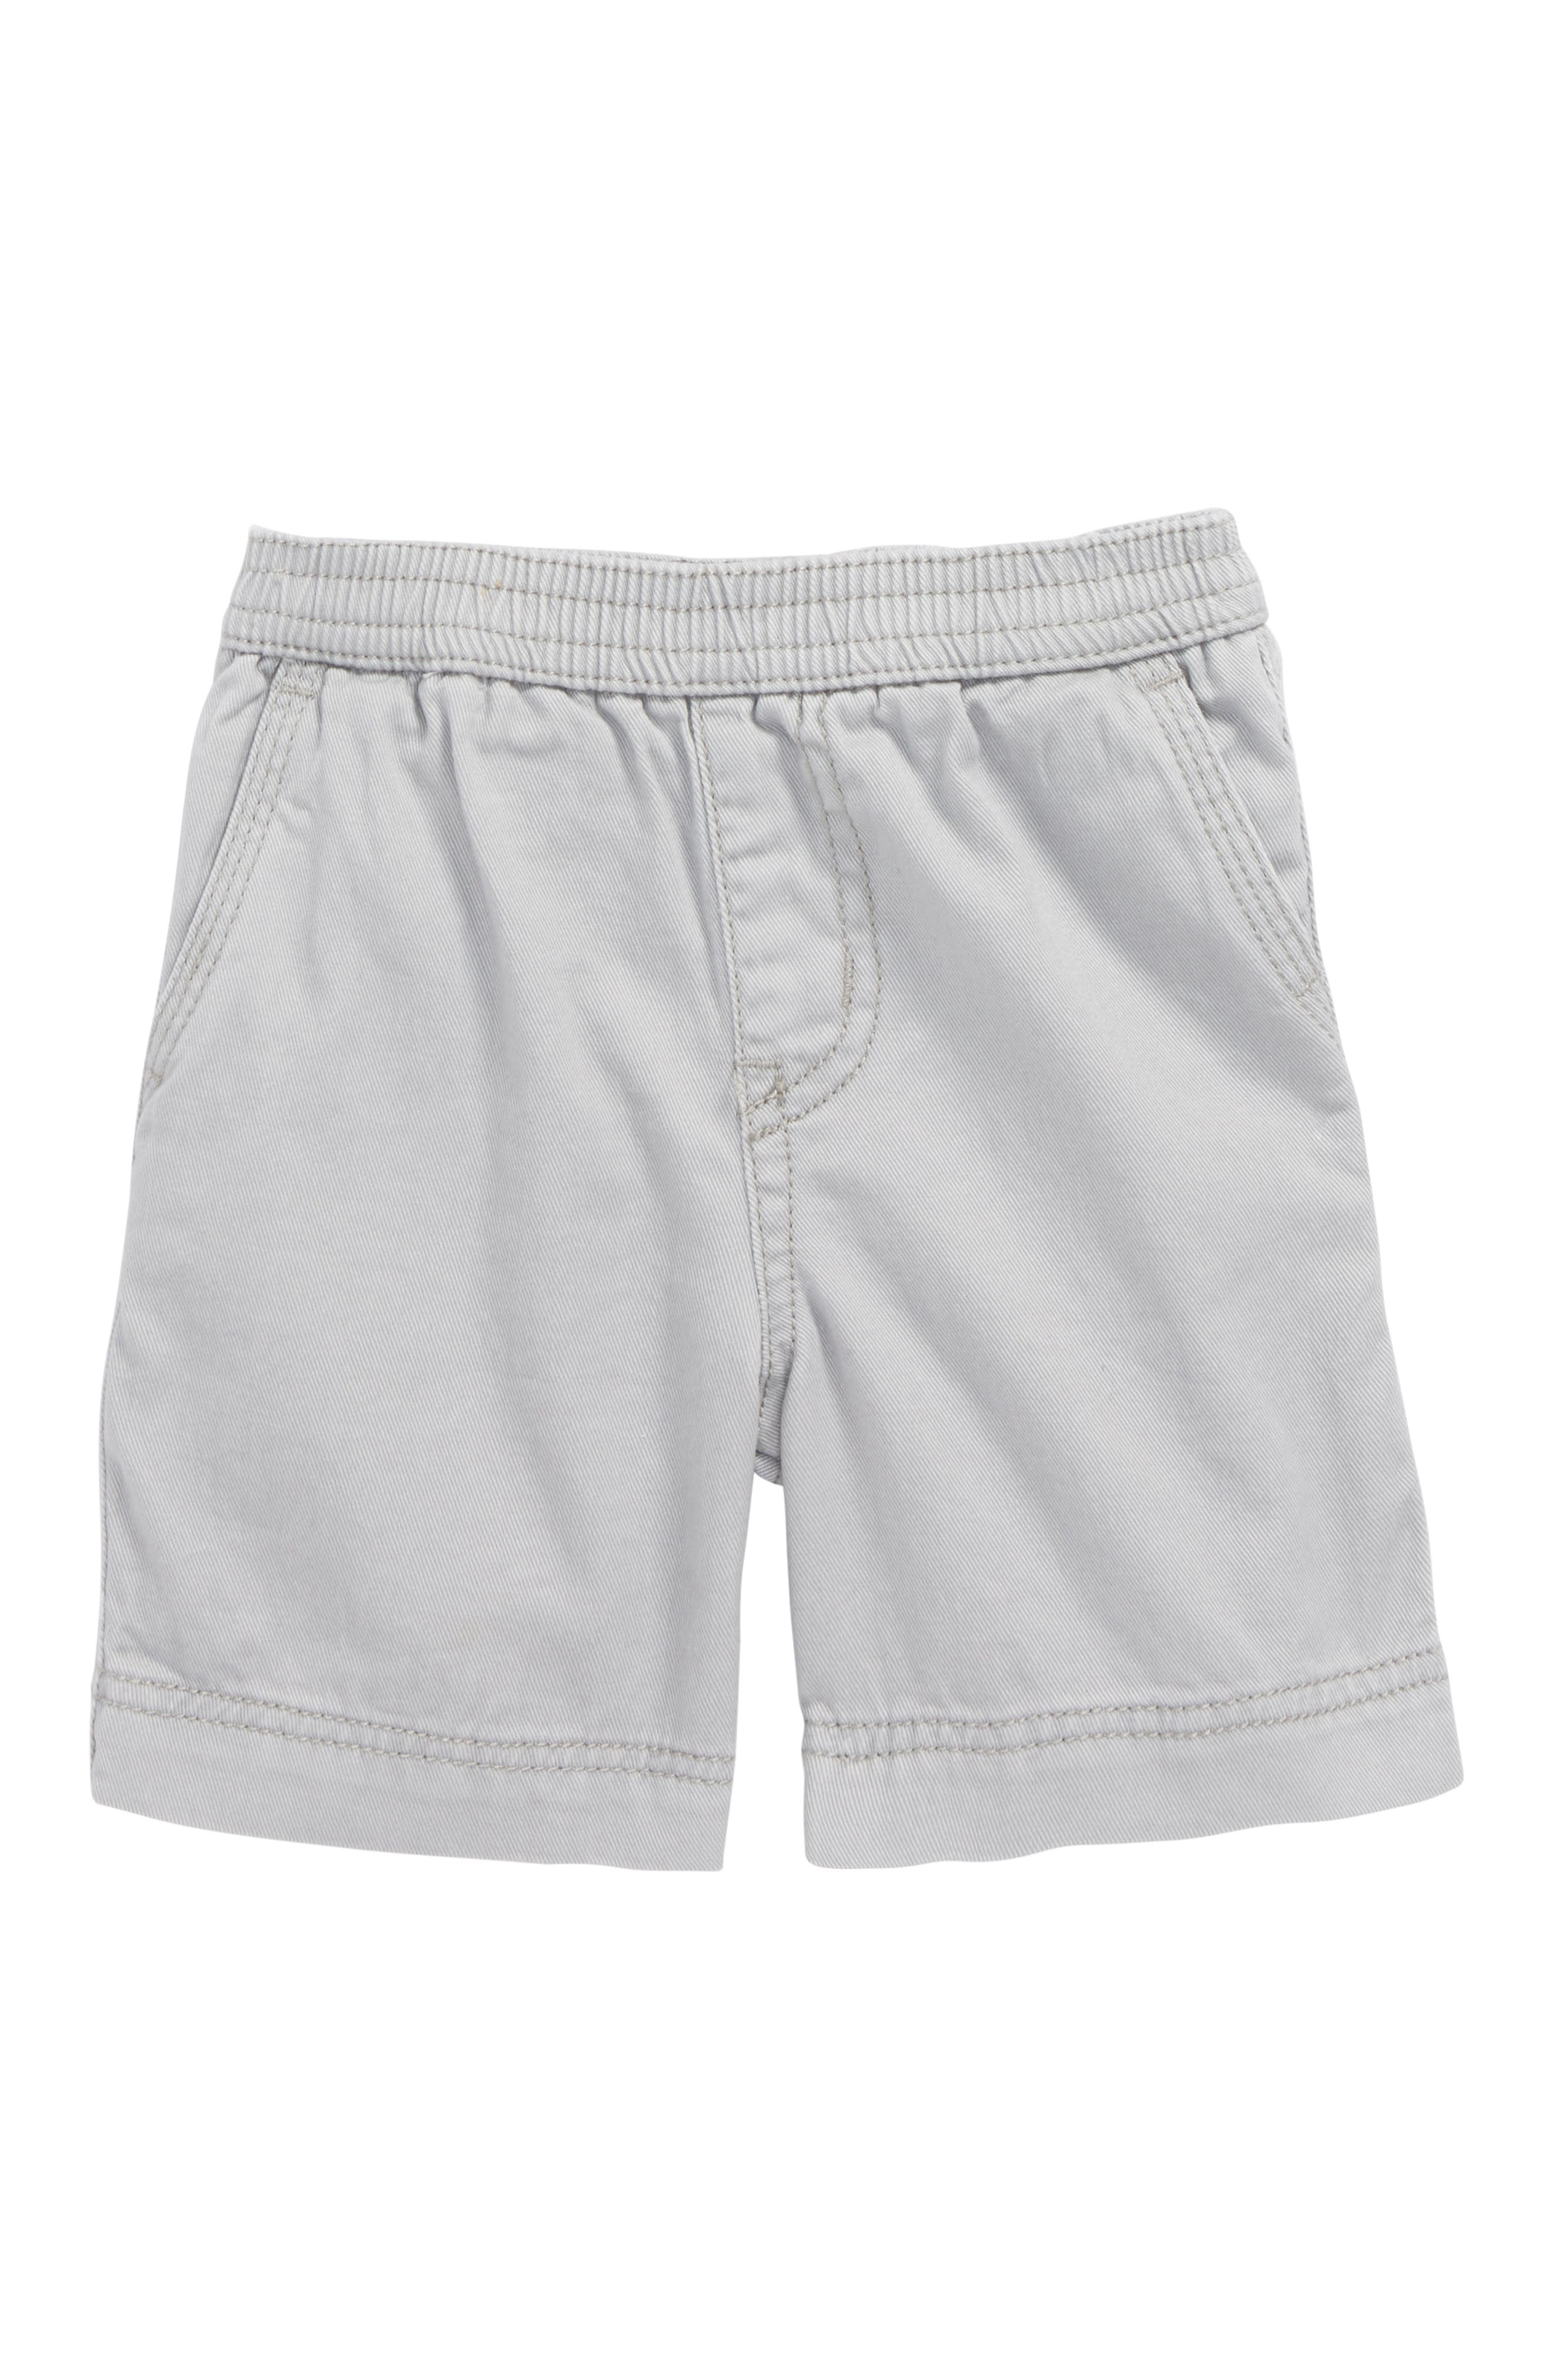 Easy Does It Twill Shorts,                         Main,                         color, Storm Grey